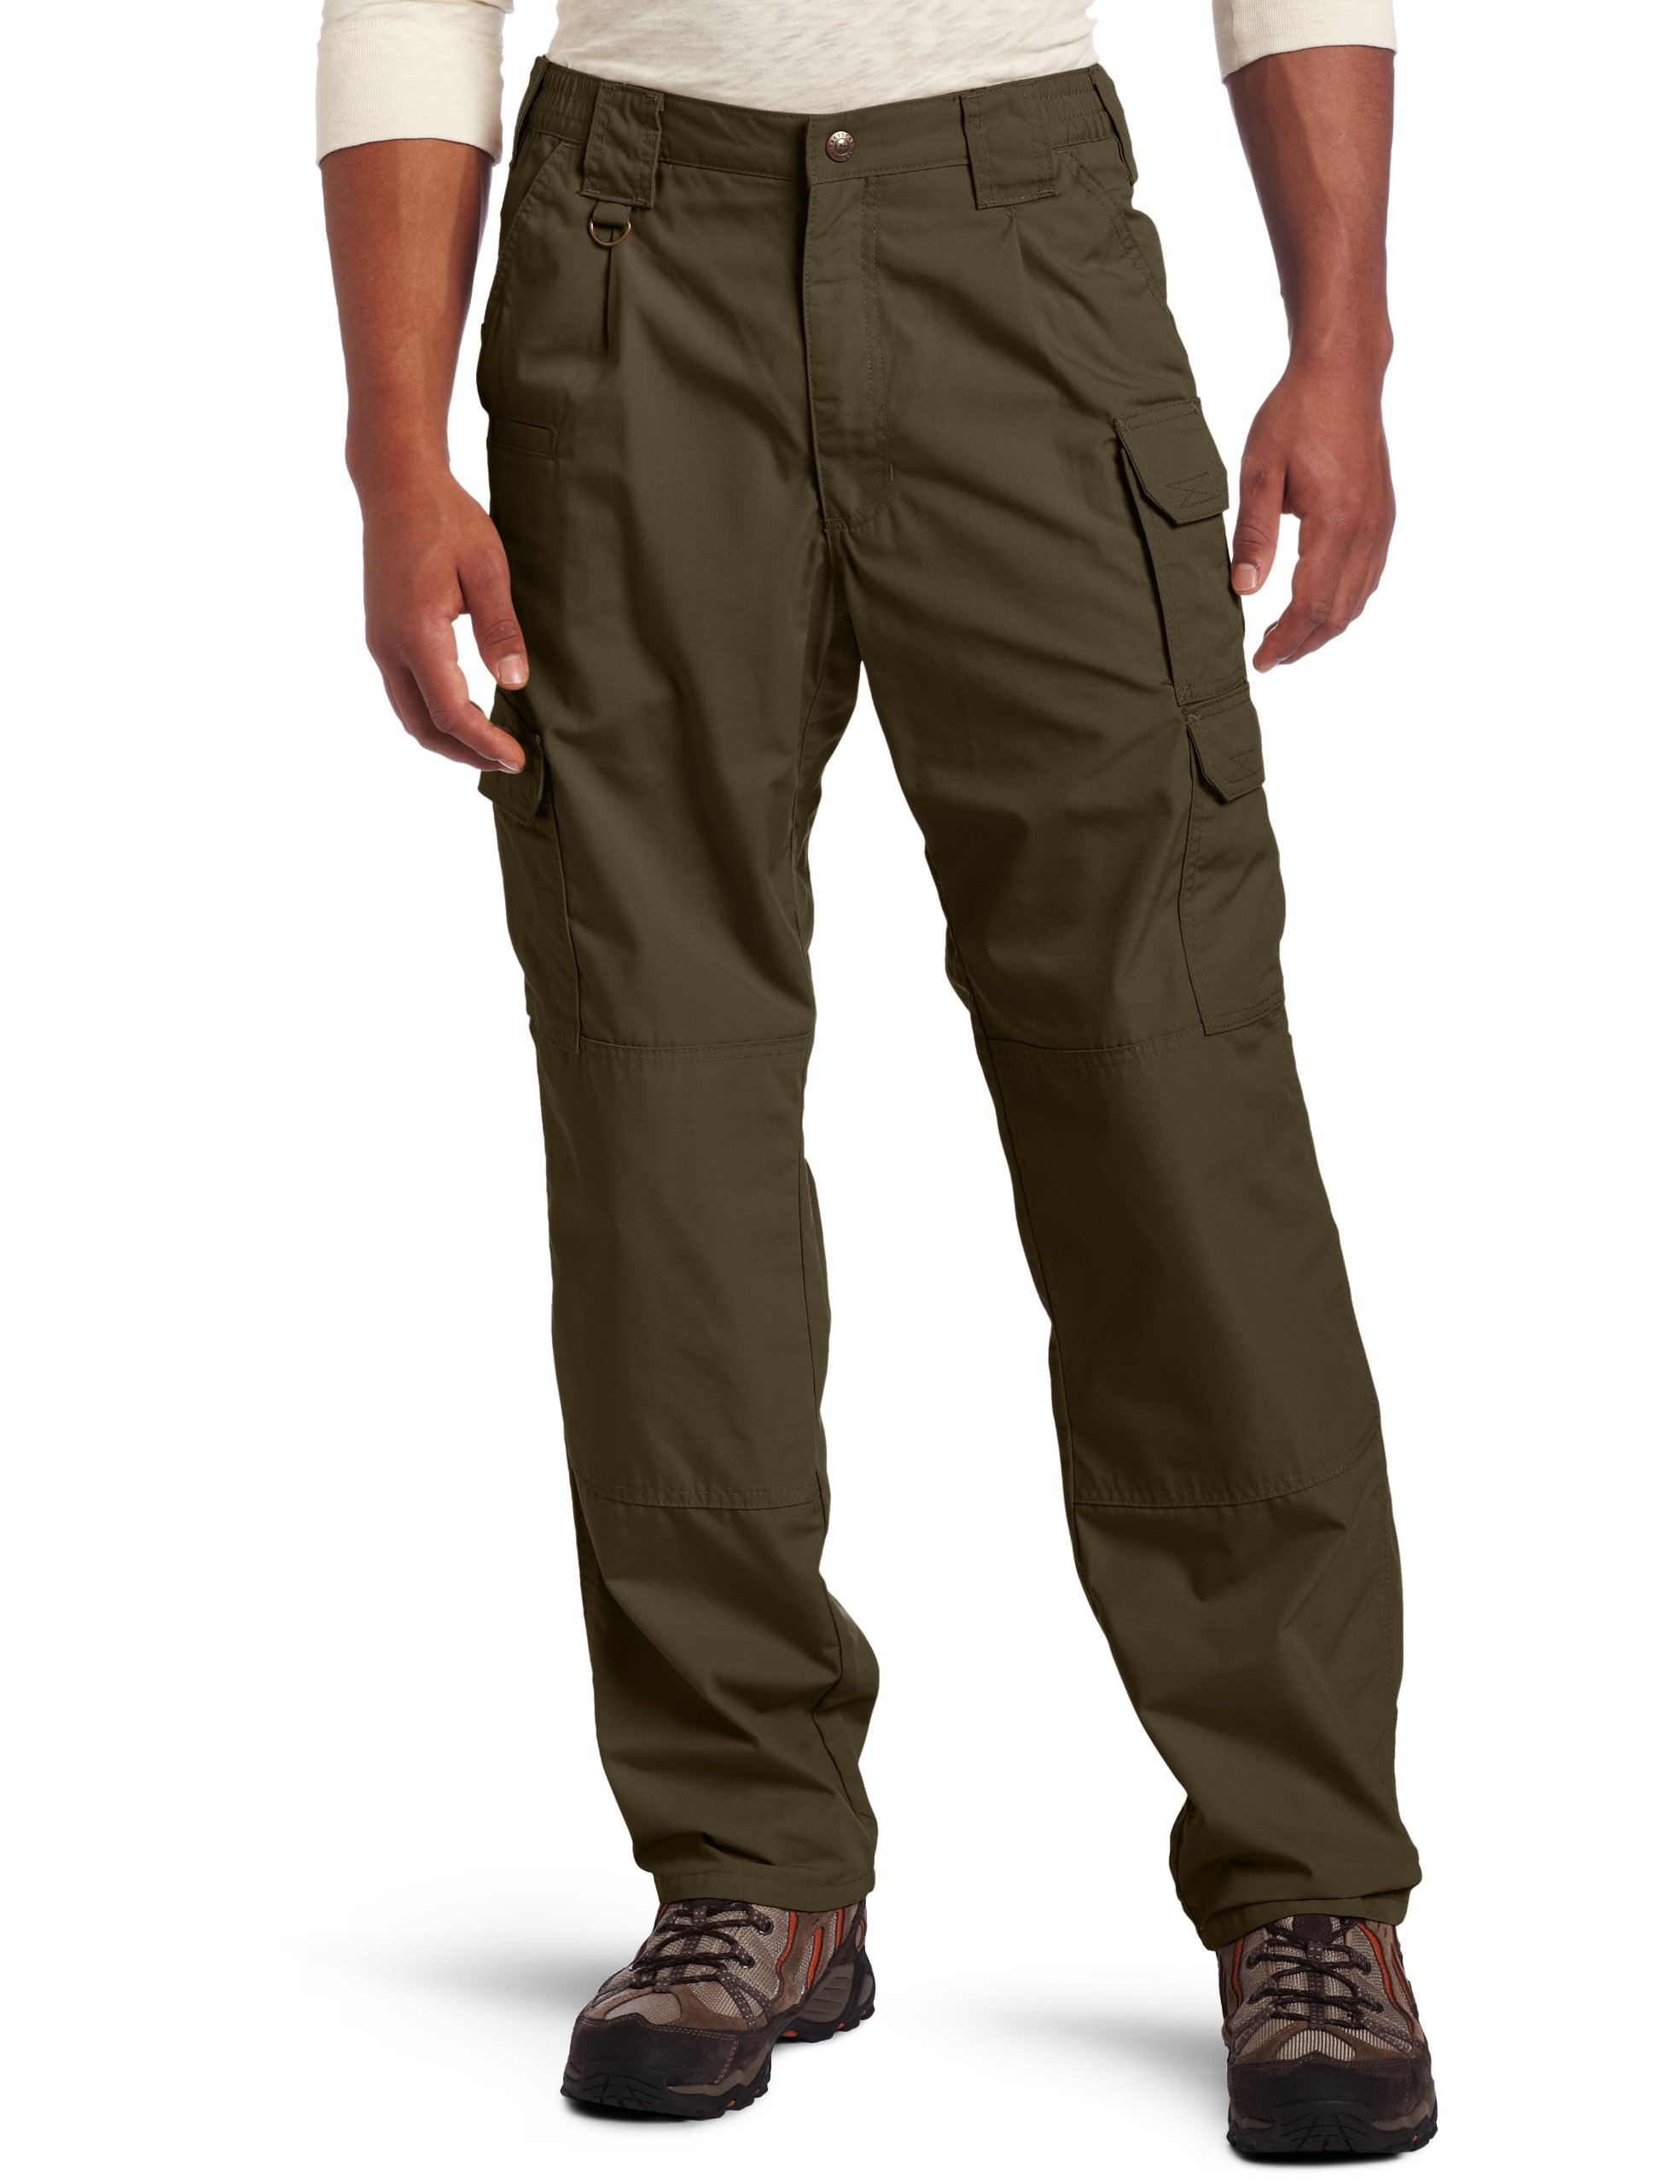 5.11 Men's TACLITE Pro Tactical Pants, Style 74273, Coyote, 34Wx34L